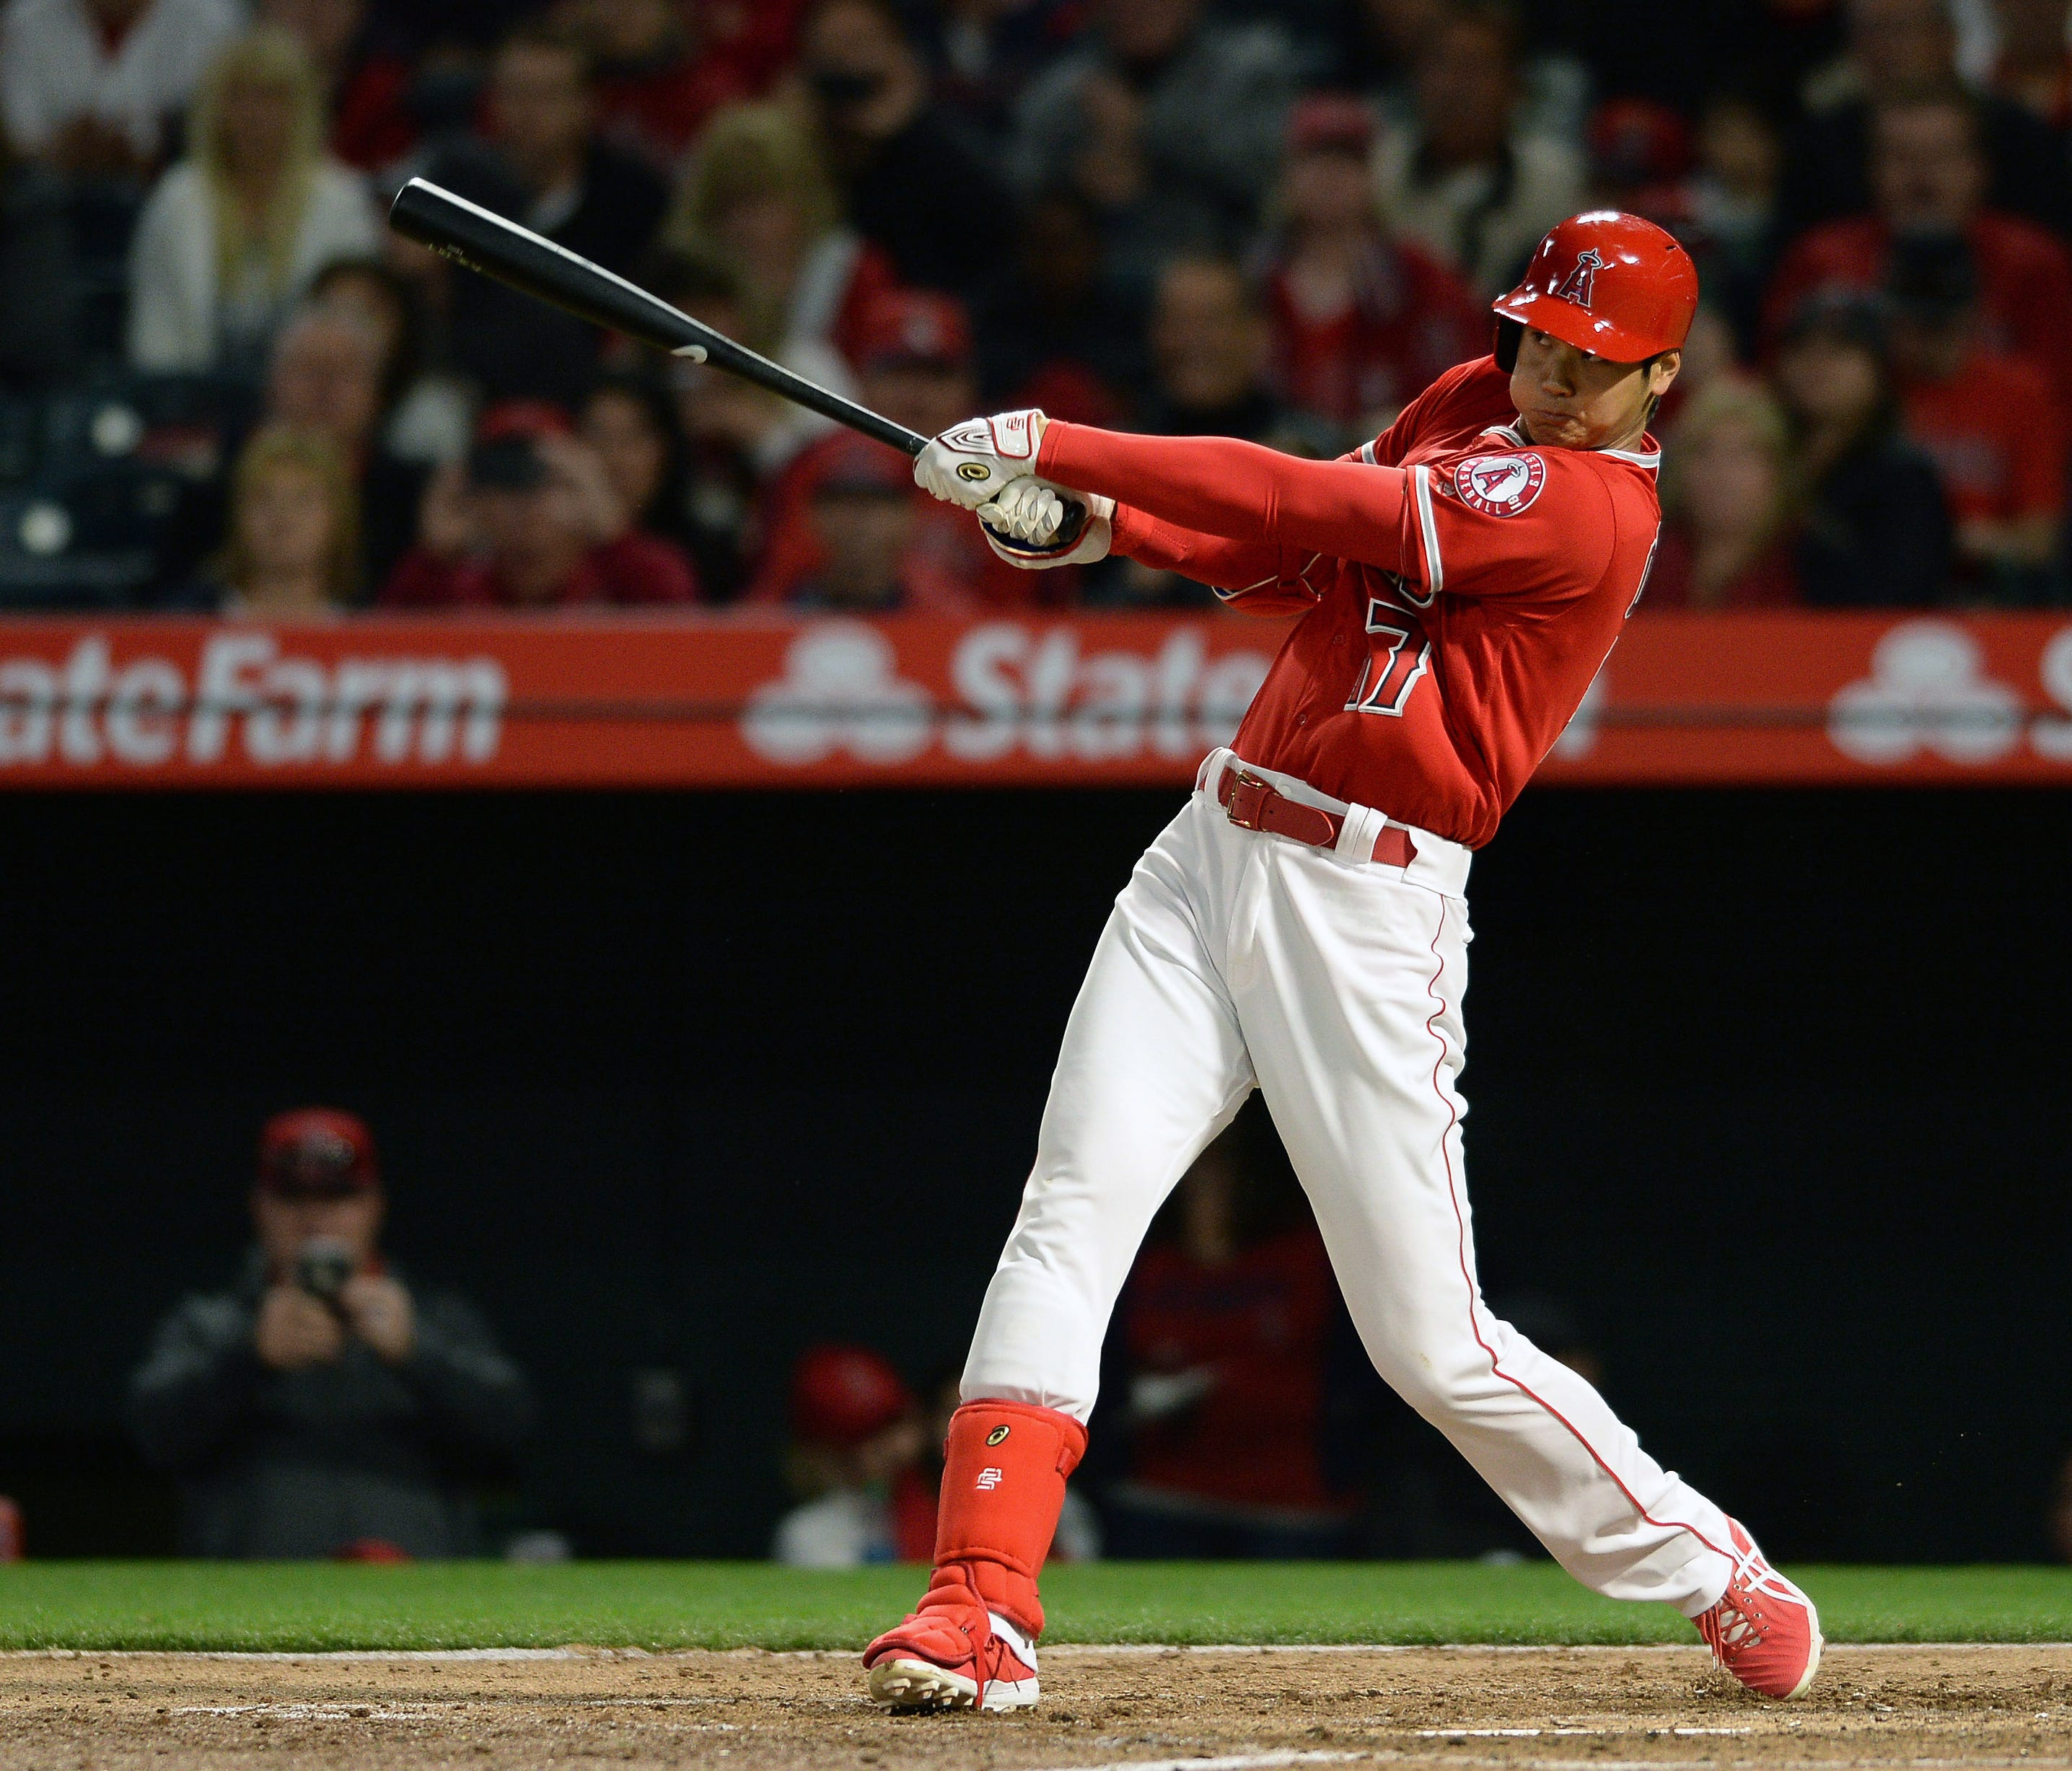 April 6: For the third consecutive game, Shohei Ohtani blasts a home run, hitting a solo shot in his first at-bat against the Oakland's Daniel Gossett.